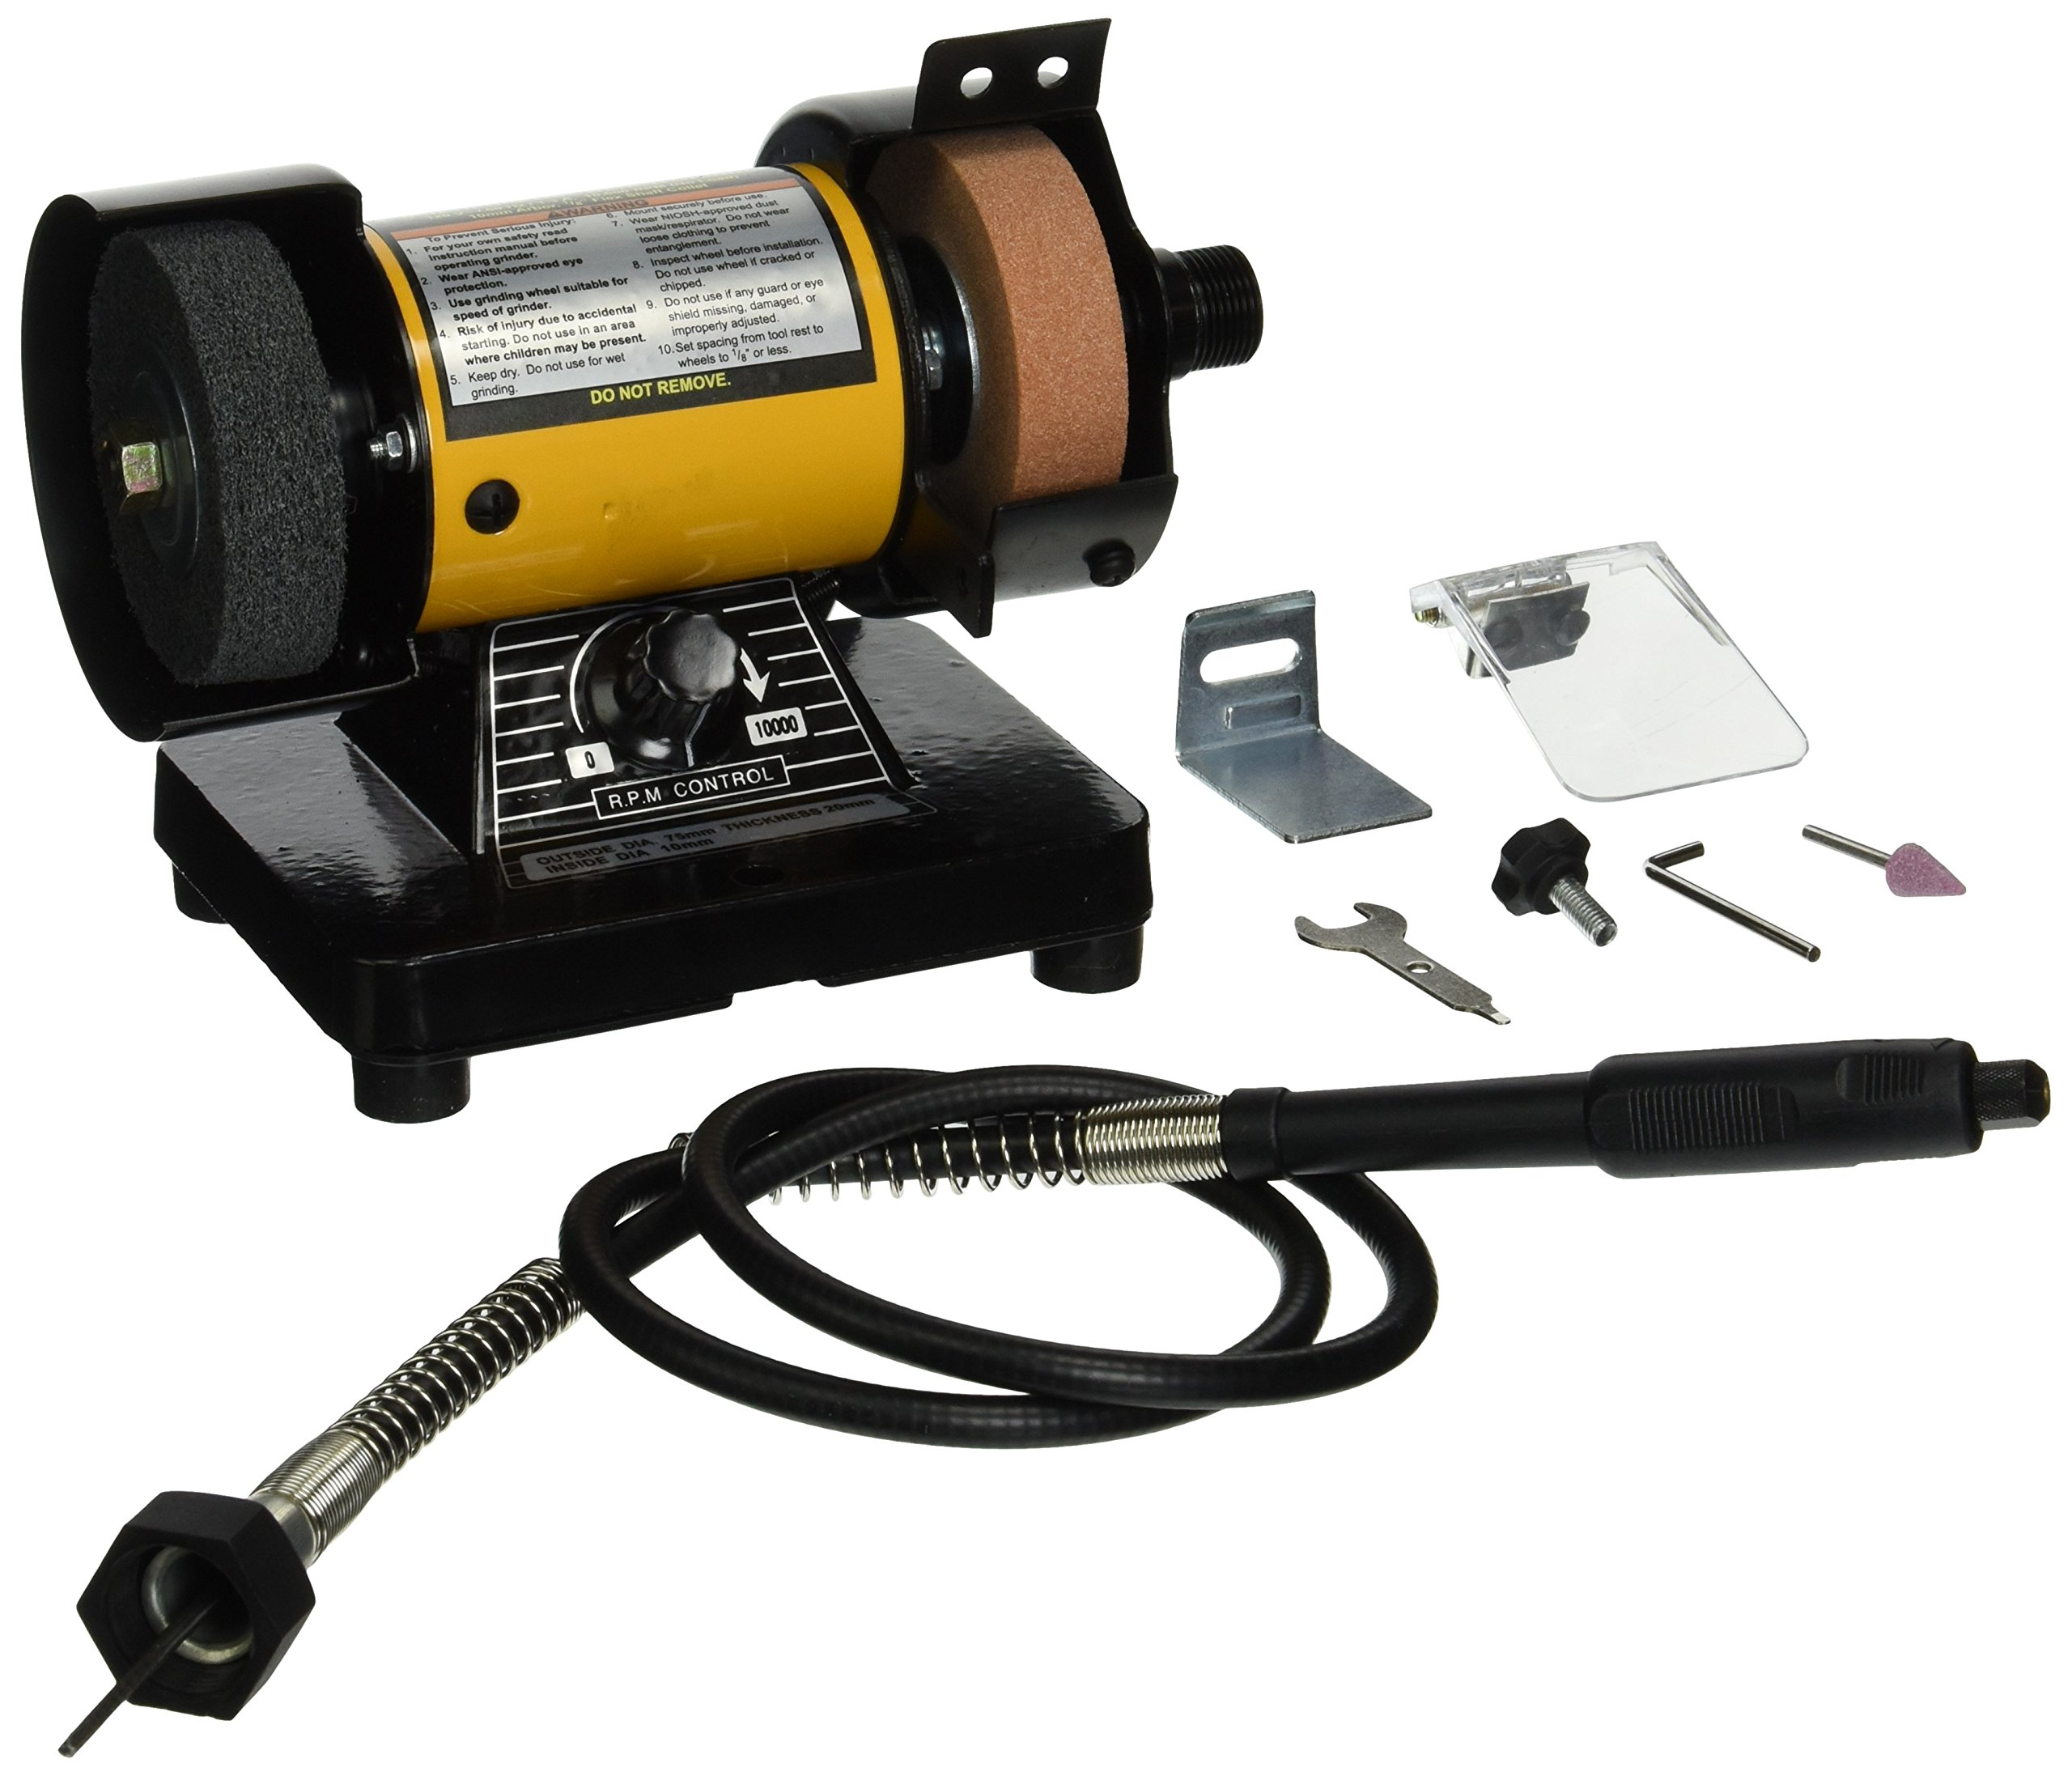 TruePower 199 Mini Multi Purpose Bench Grinder and Polisher with Flexible Shaft, Tool Rest and Safety Guard, 3-Inch